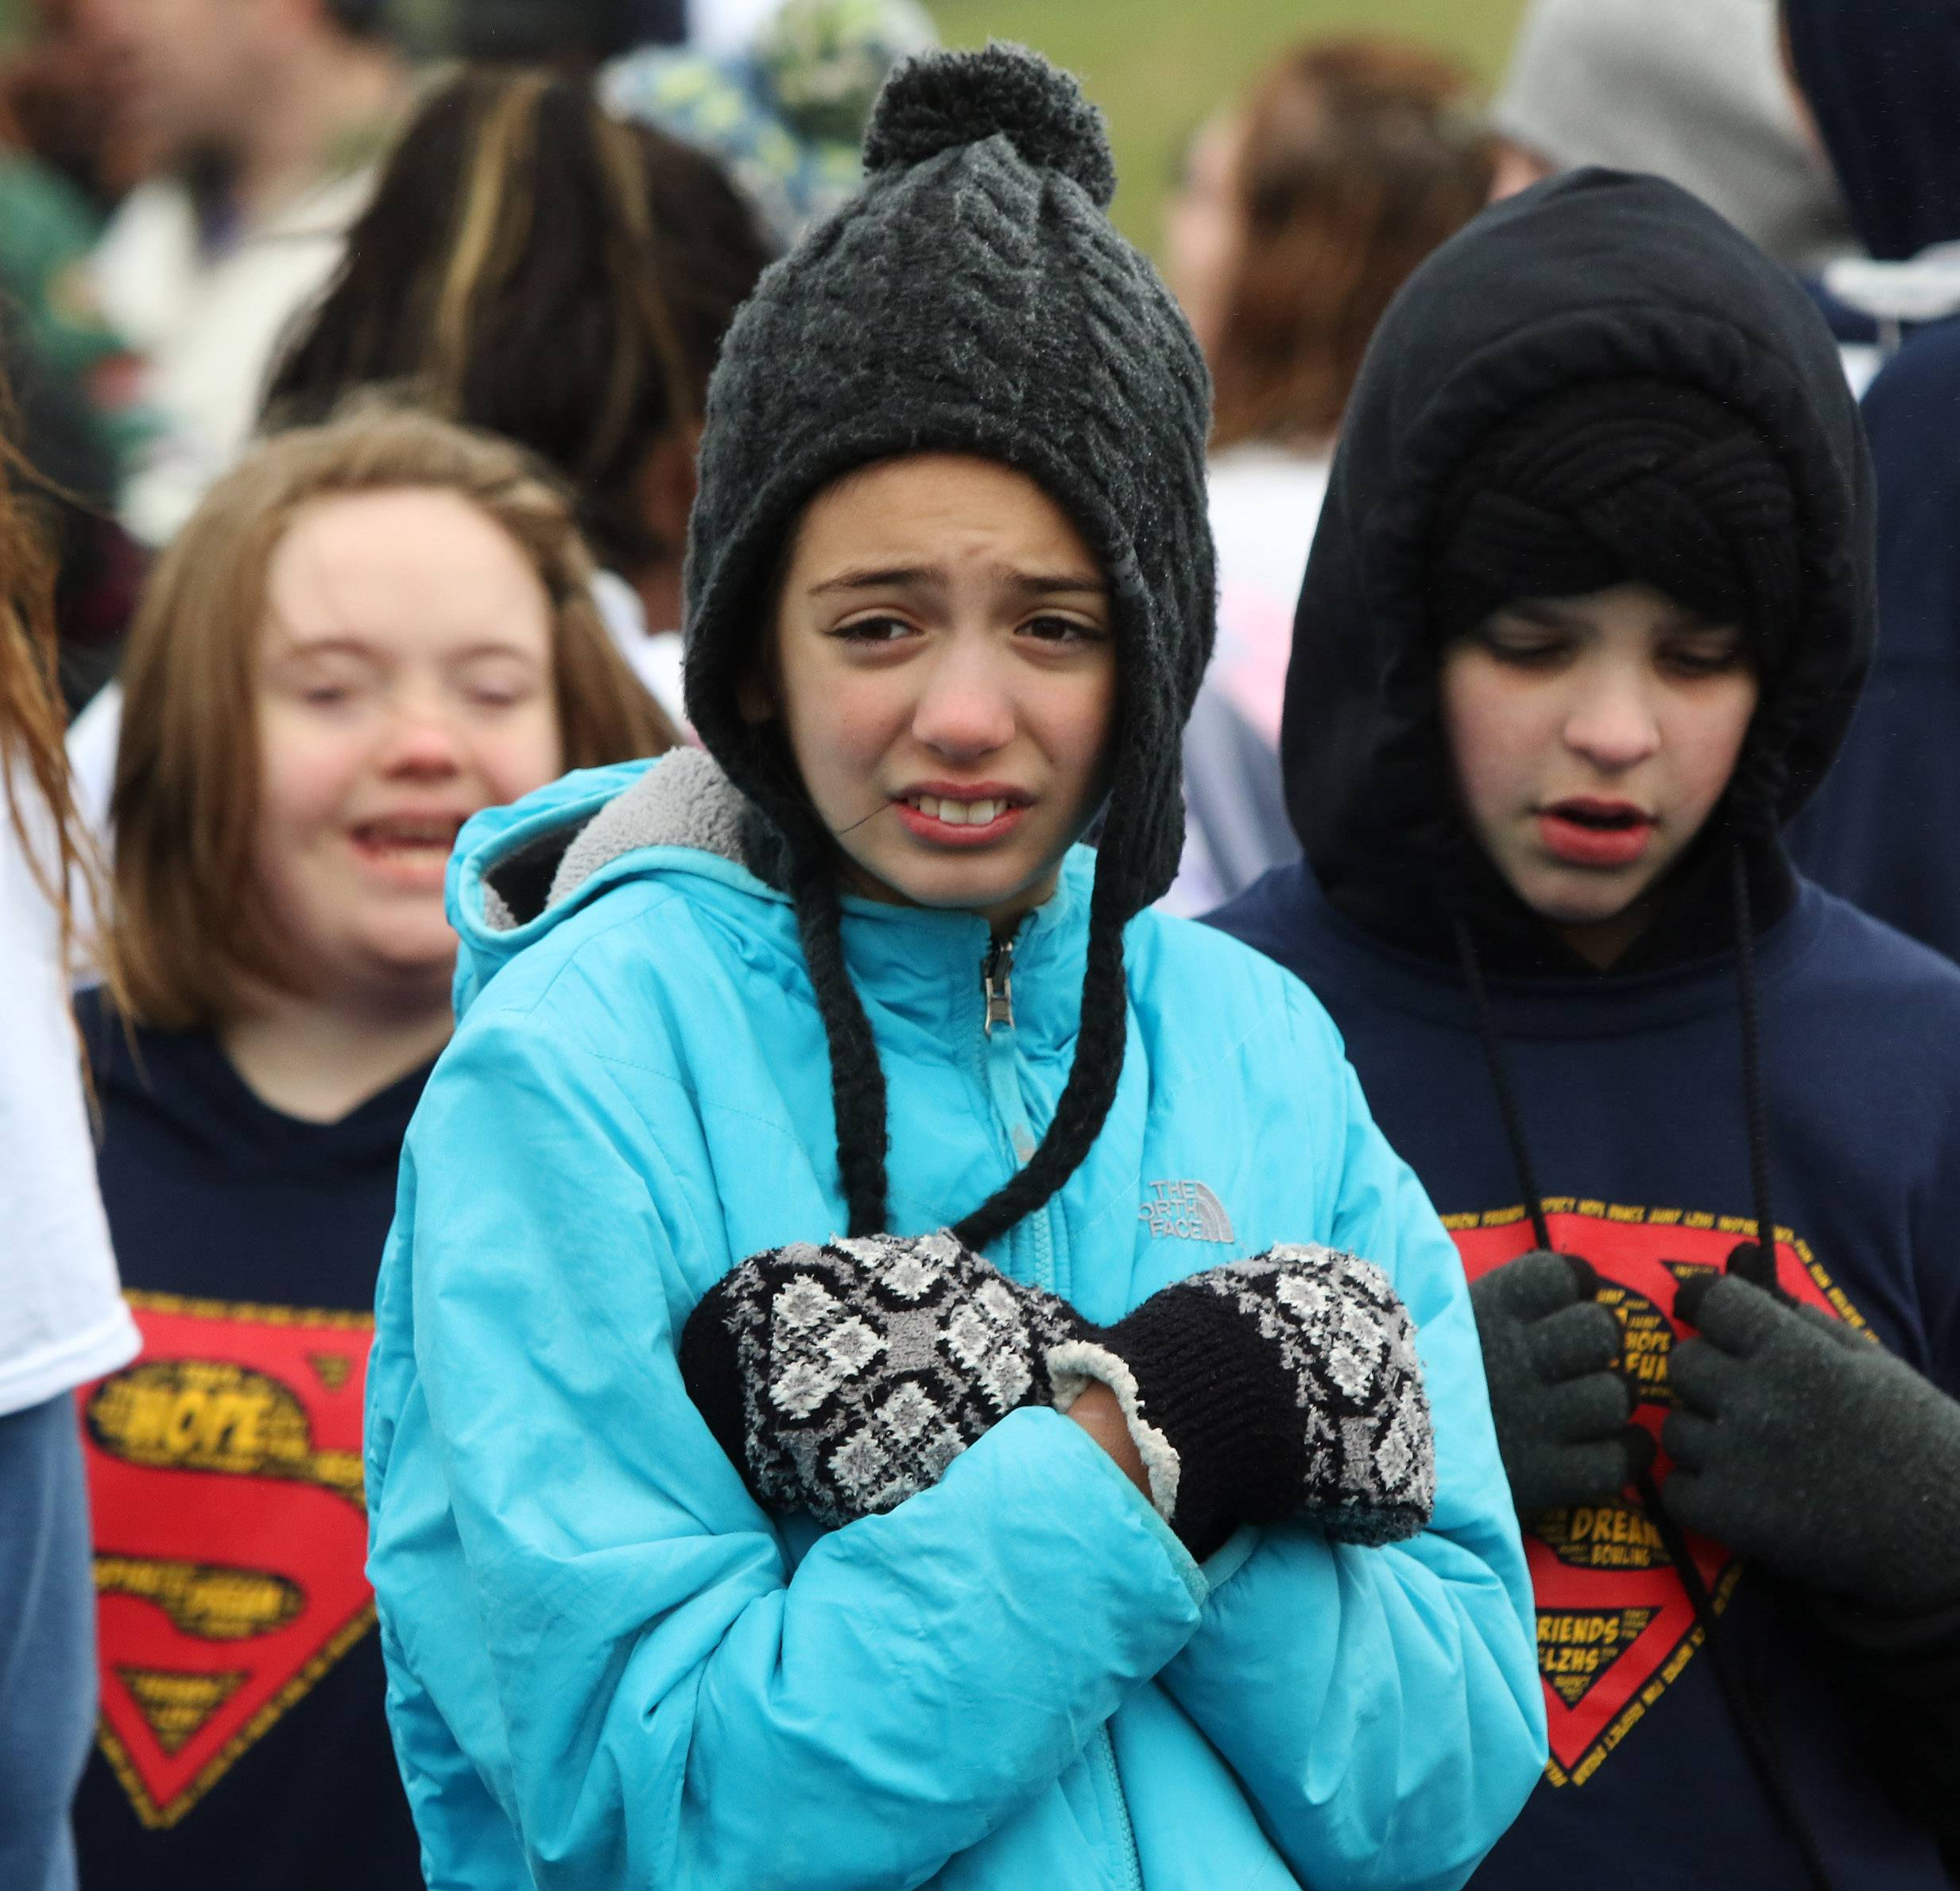 Megan Hendricks, 12, of the Barrington Broncos tries to stay warm before racing during the annual Spring Games of Special Olympics Illinois Northeastern/Area 13 on Sunday at Lake Zurich High School. As a light drizzle fell on the field, Special Olympics athletes competed in races on the wet track.